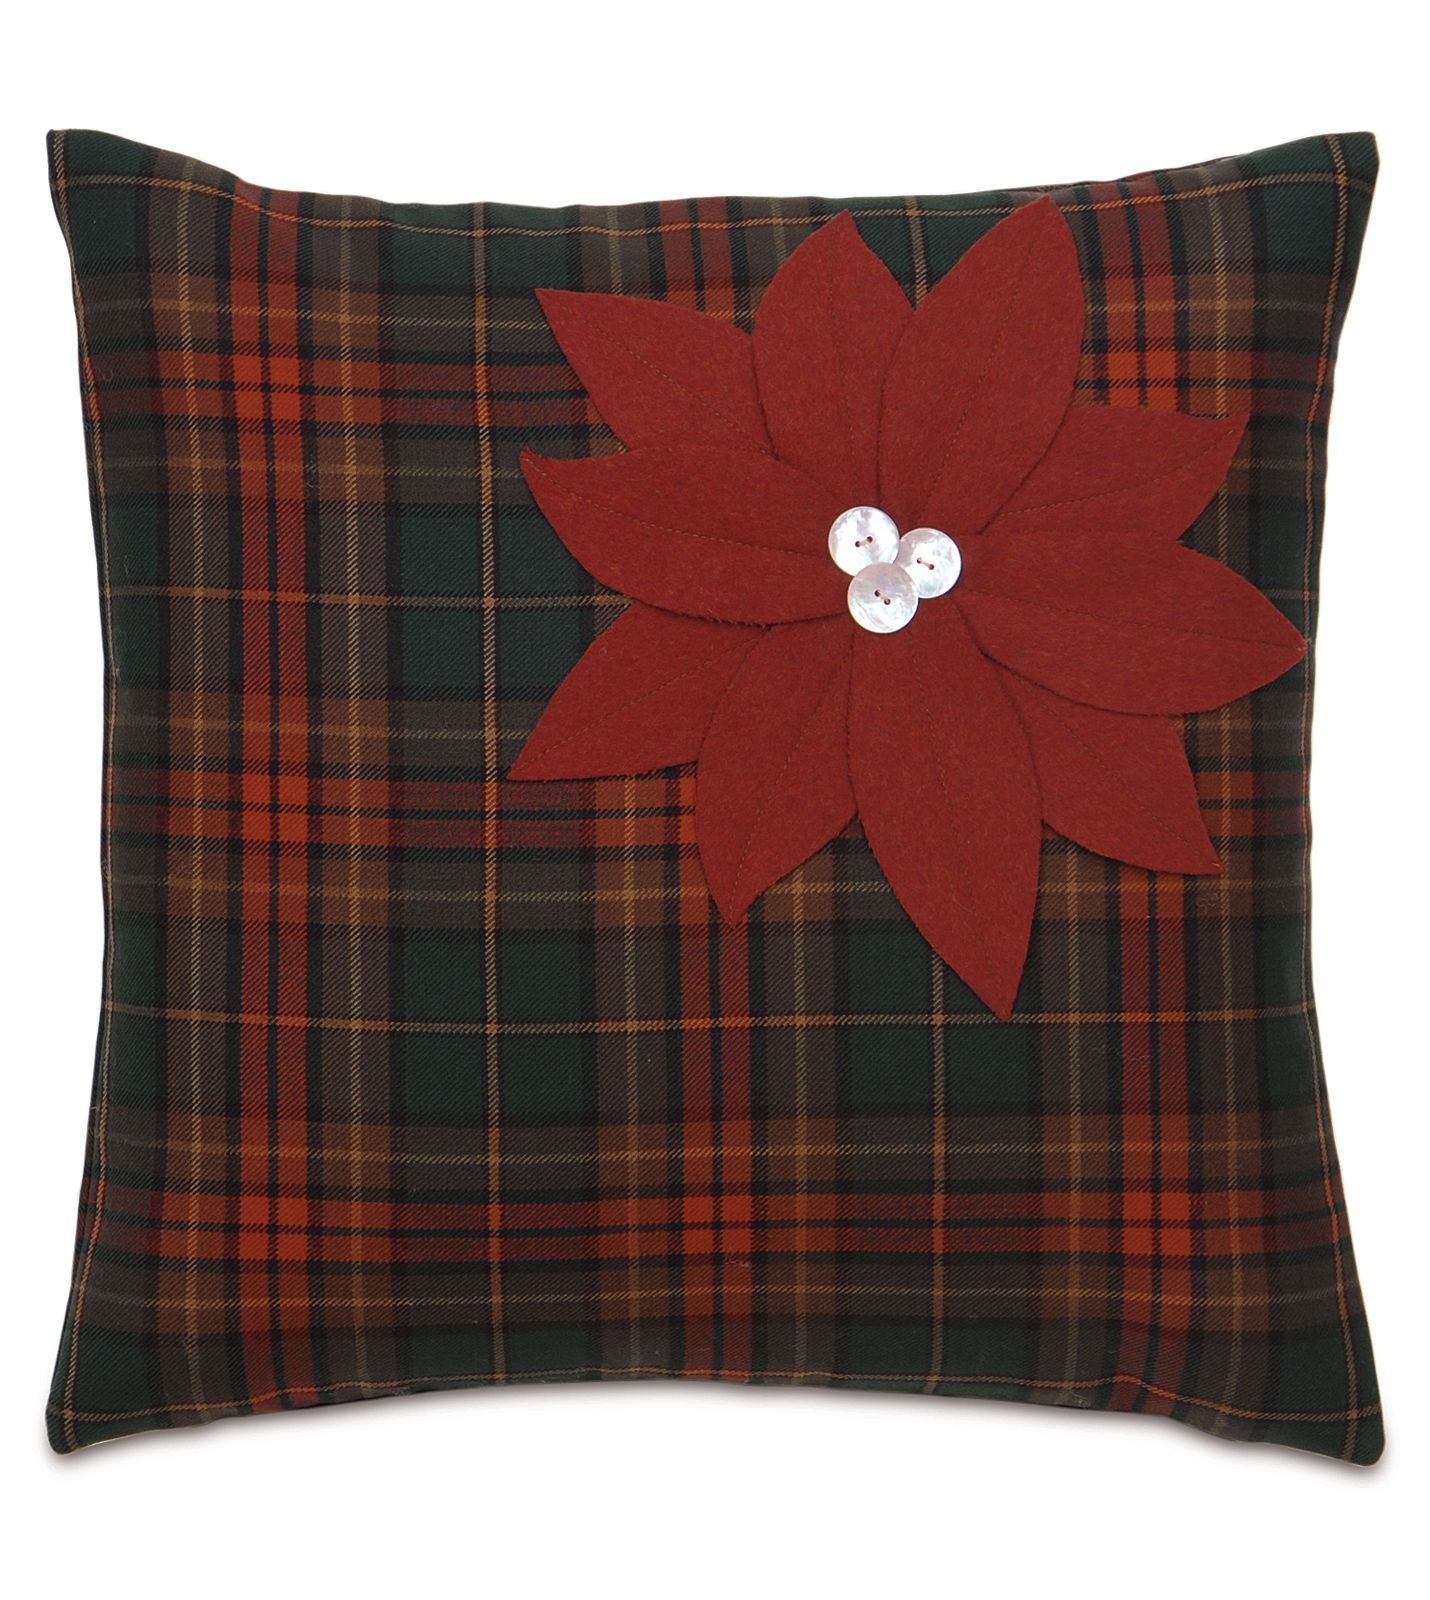 Eastern Accents Home For The Holidays Poinsettia Plaid Decorative Pillow Plaid Decorative Pillows Plaid Throw Pillows Holiday Pillows